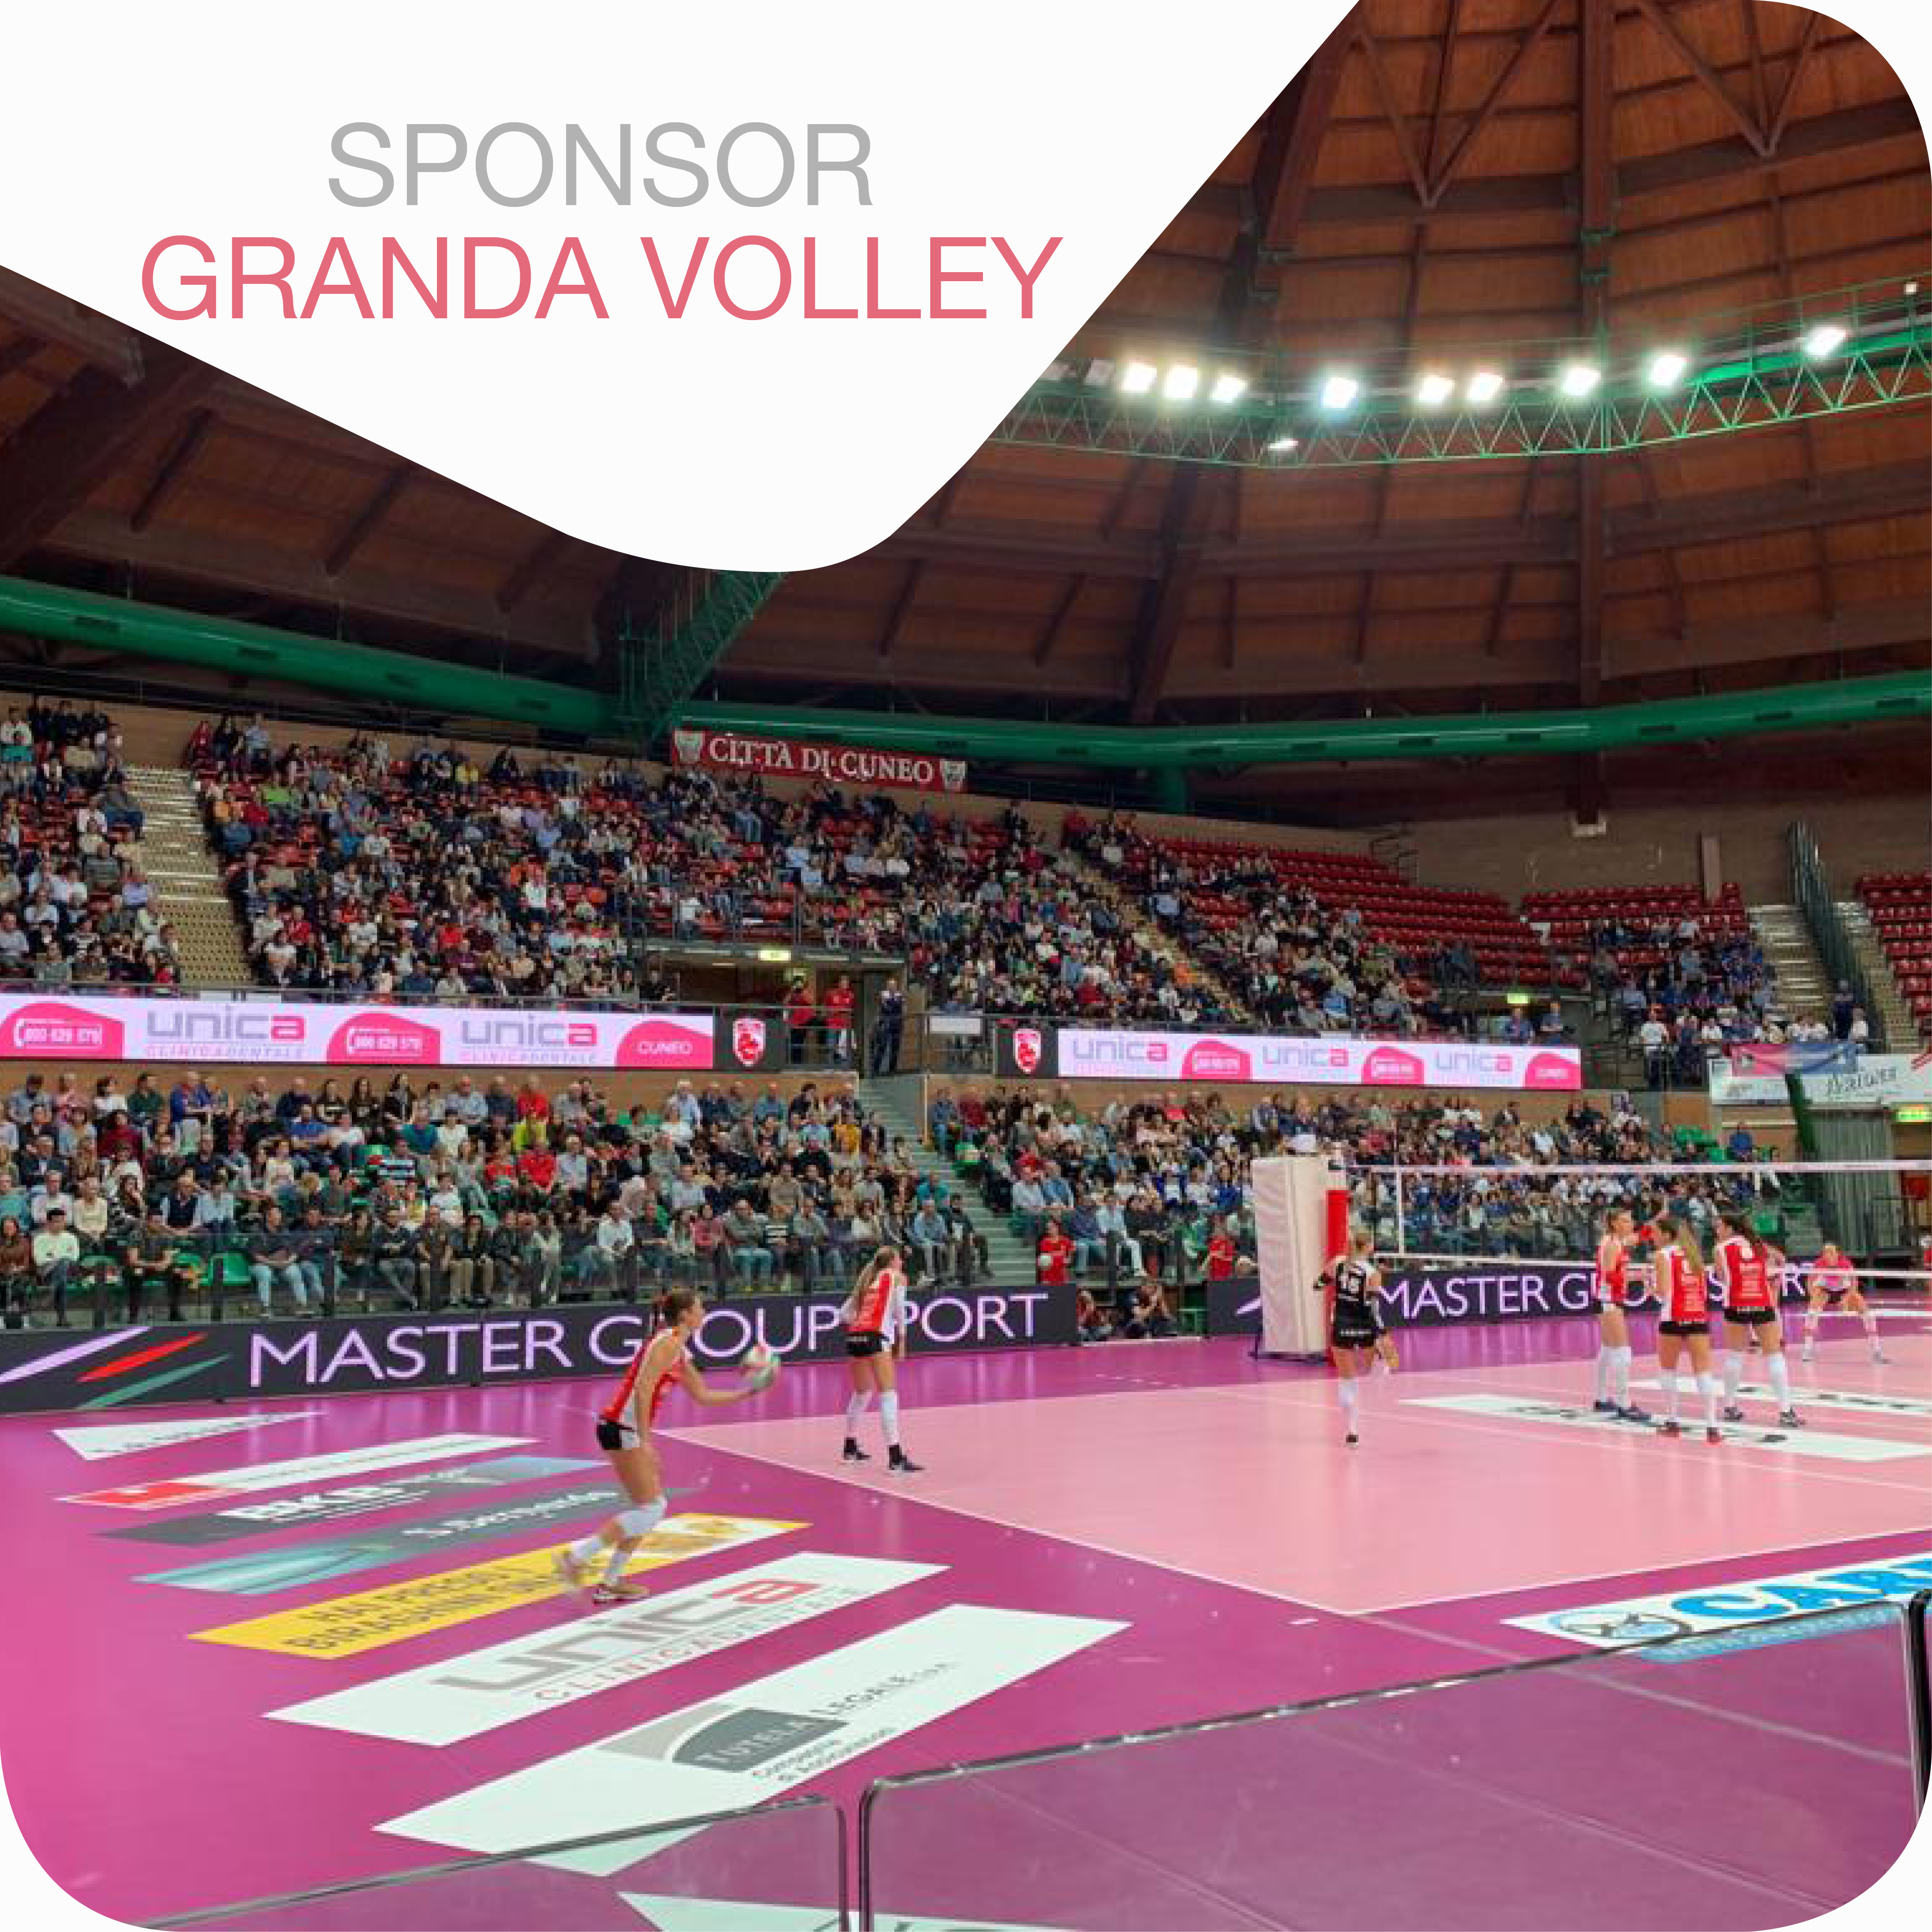 Unica Clinica Dentale sponsor Granda Volley